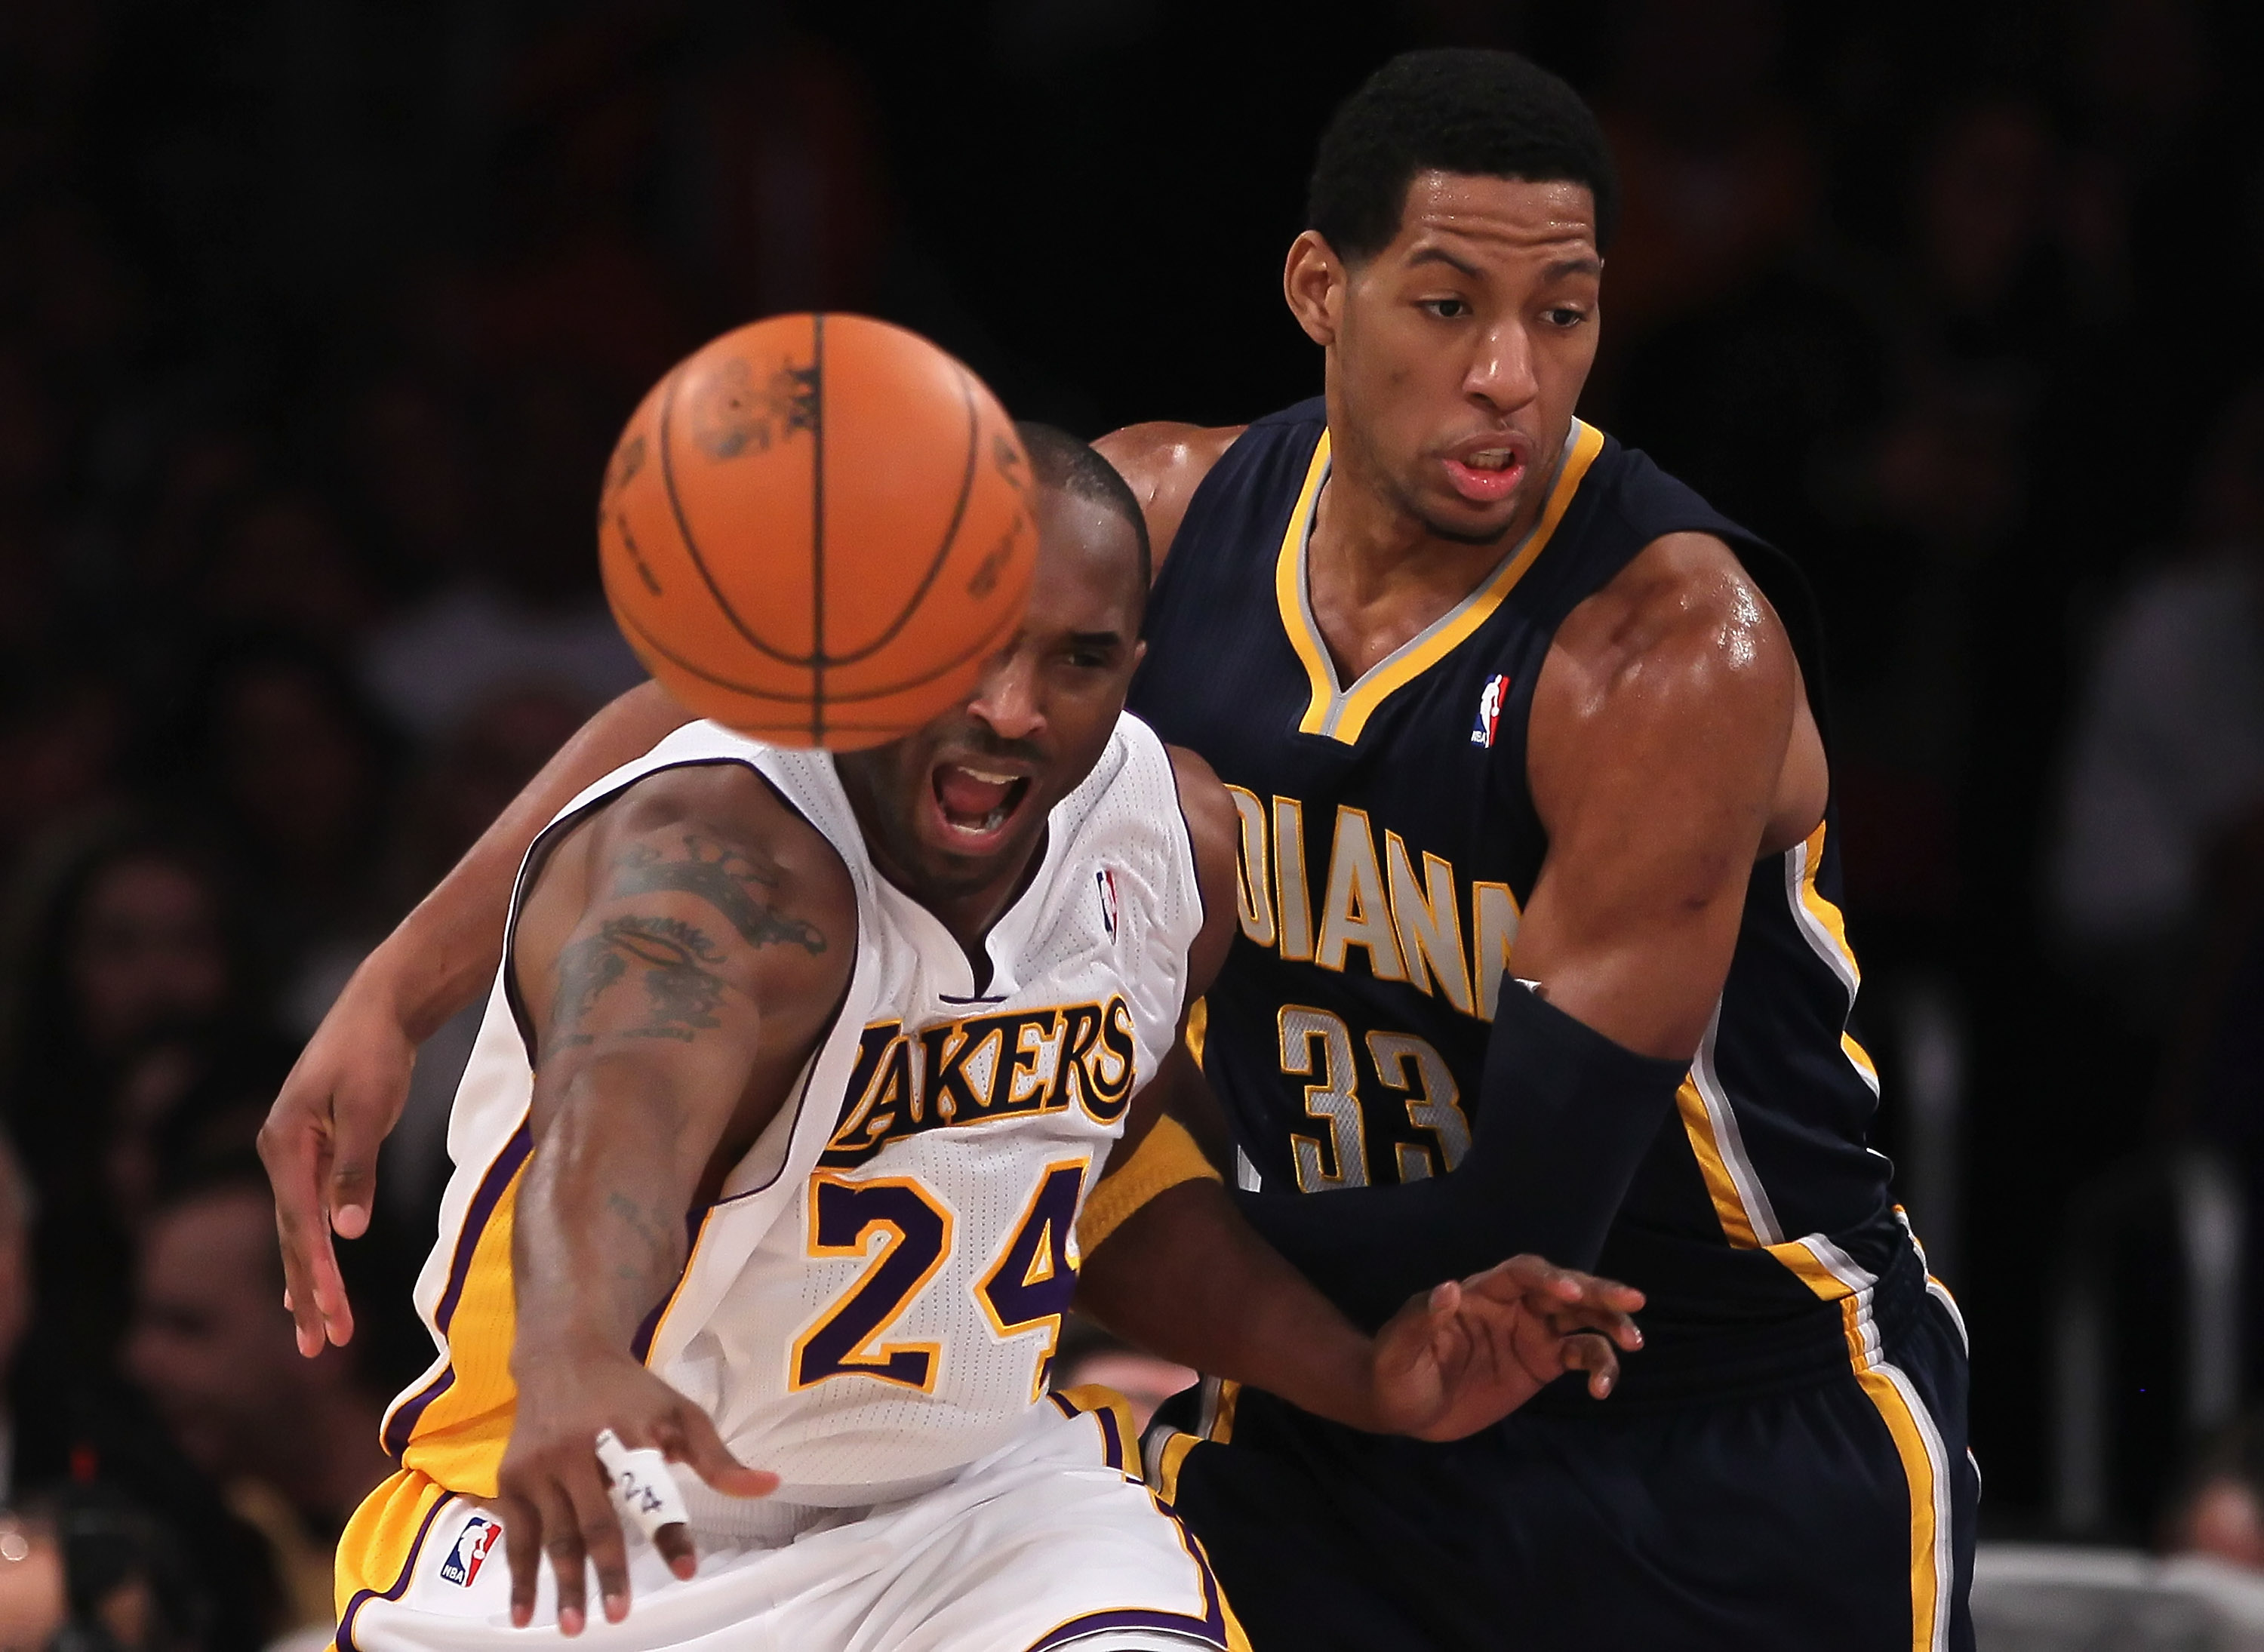 LOS ANGELES, CA - NOVEMBER 28:  Danny Granger #33 of the Indiana Pacers steals the ball from Kobe Bryant #24 of the Los Angeles Lakers during the second quarter at Staples Center on November 28, 2010 in Los Angeles, California. The Pacers defeated the Lak